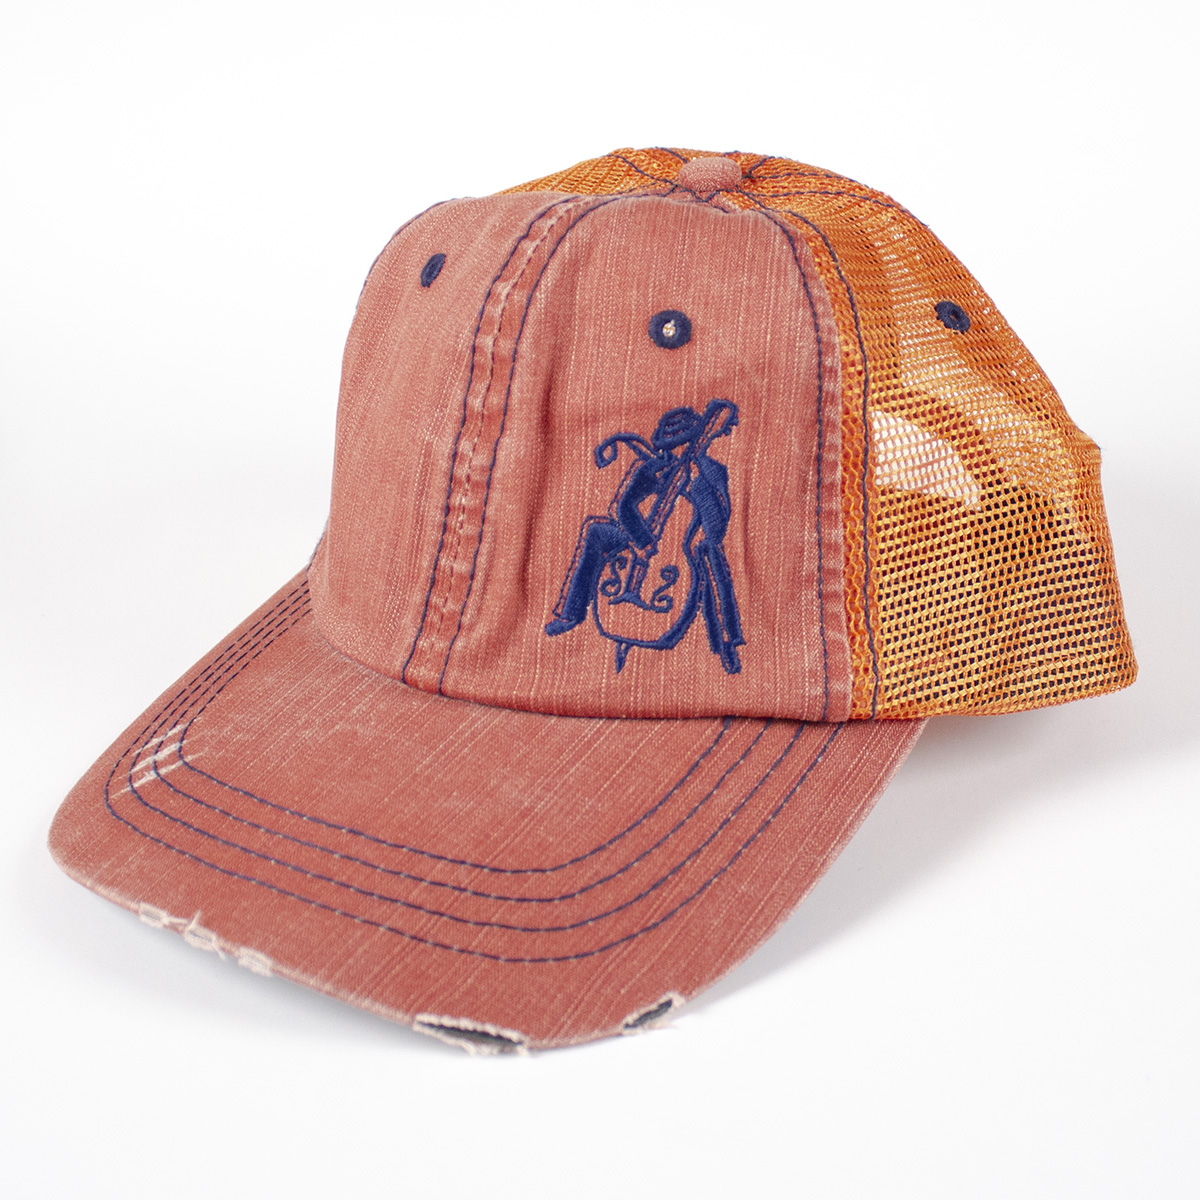 embroidery-joe-for-jazz-hat-square.jpg